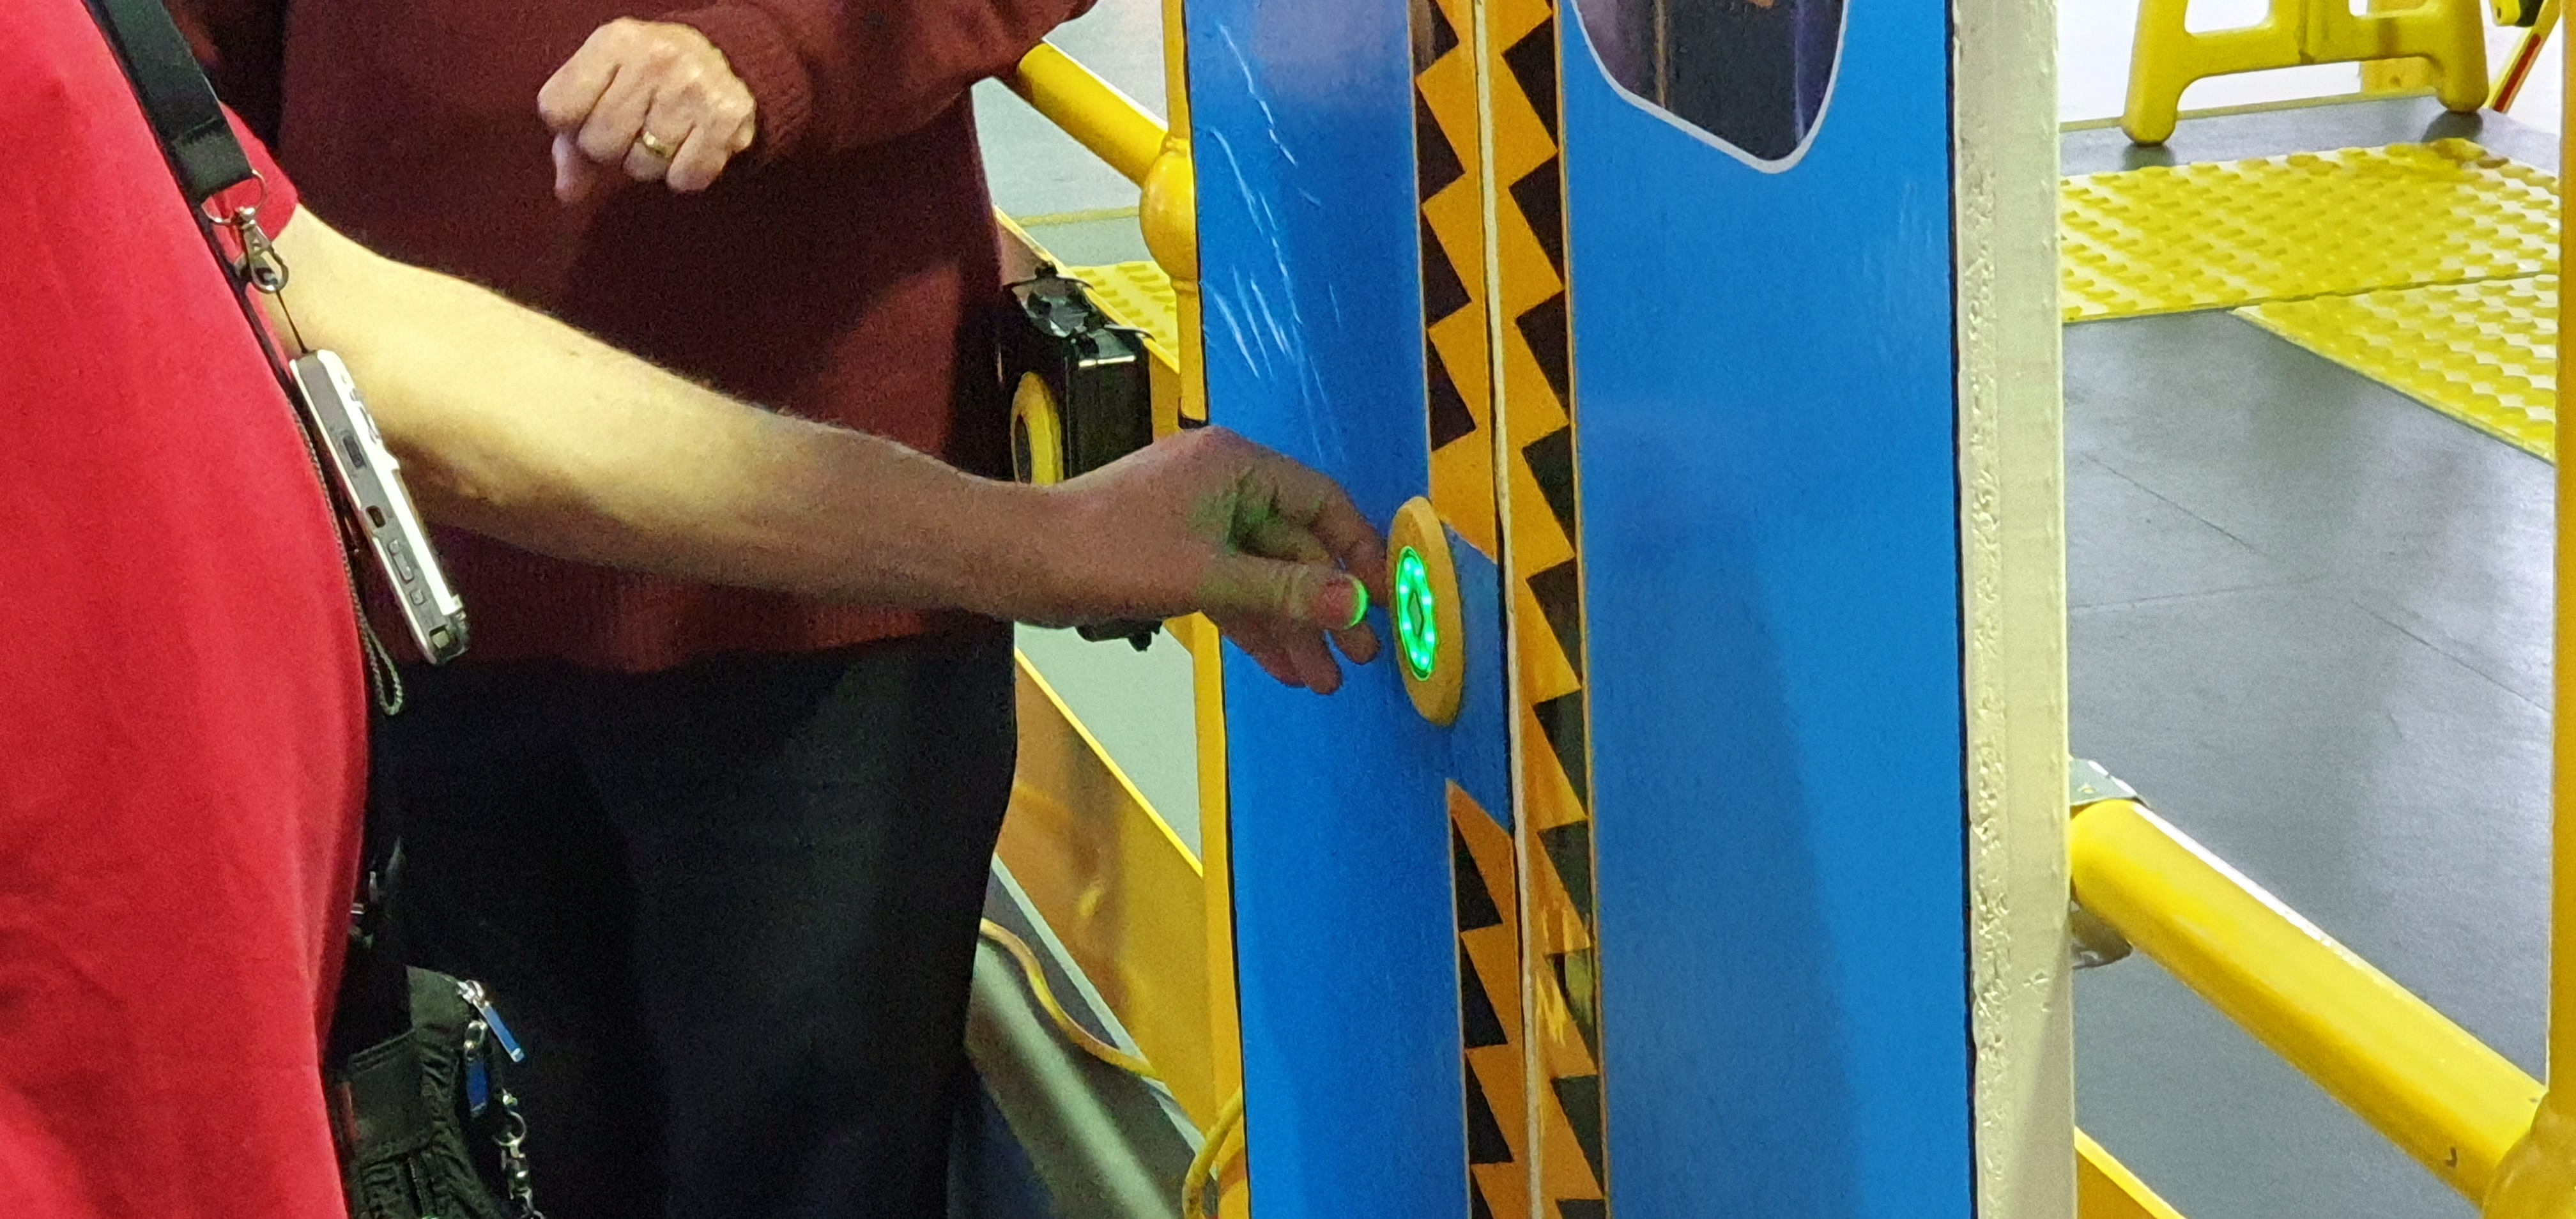 """A close-up of a hand pressing the open button on a train door."""